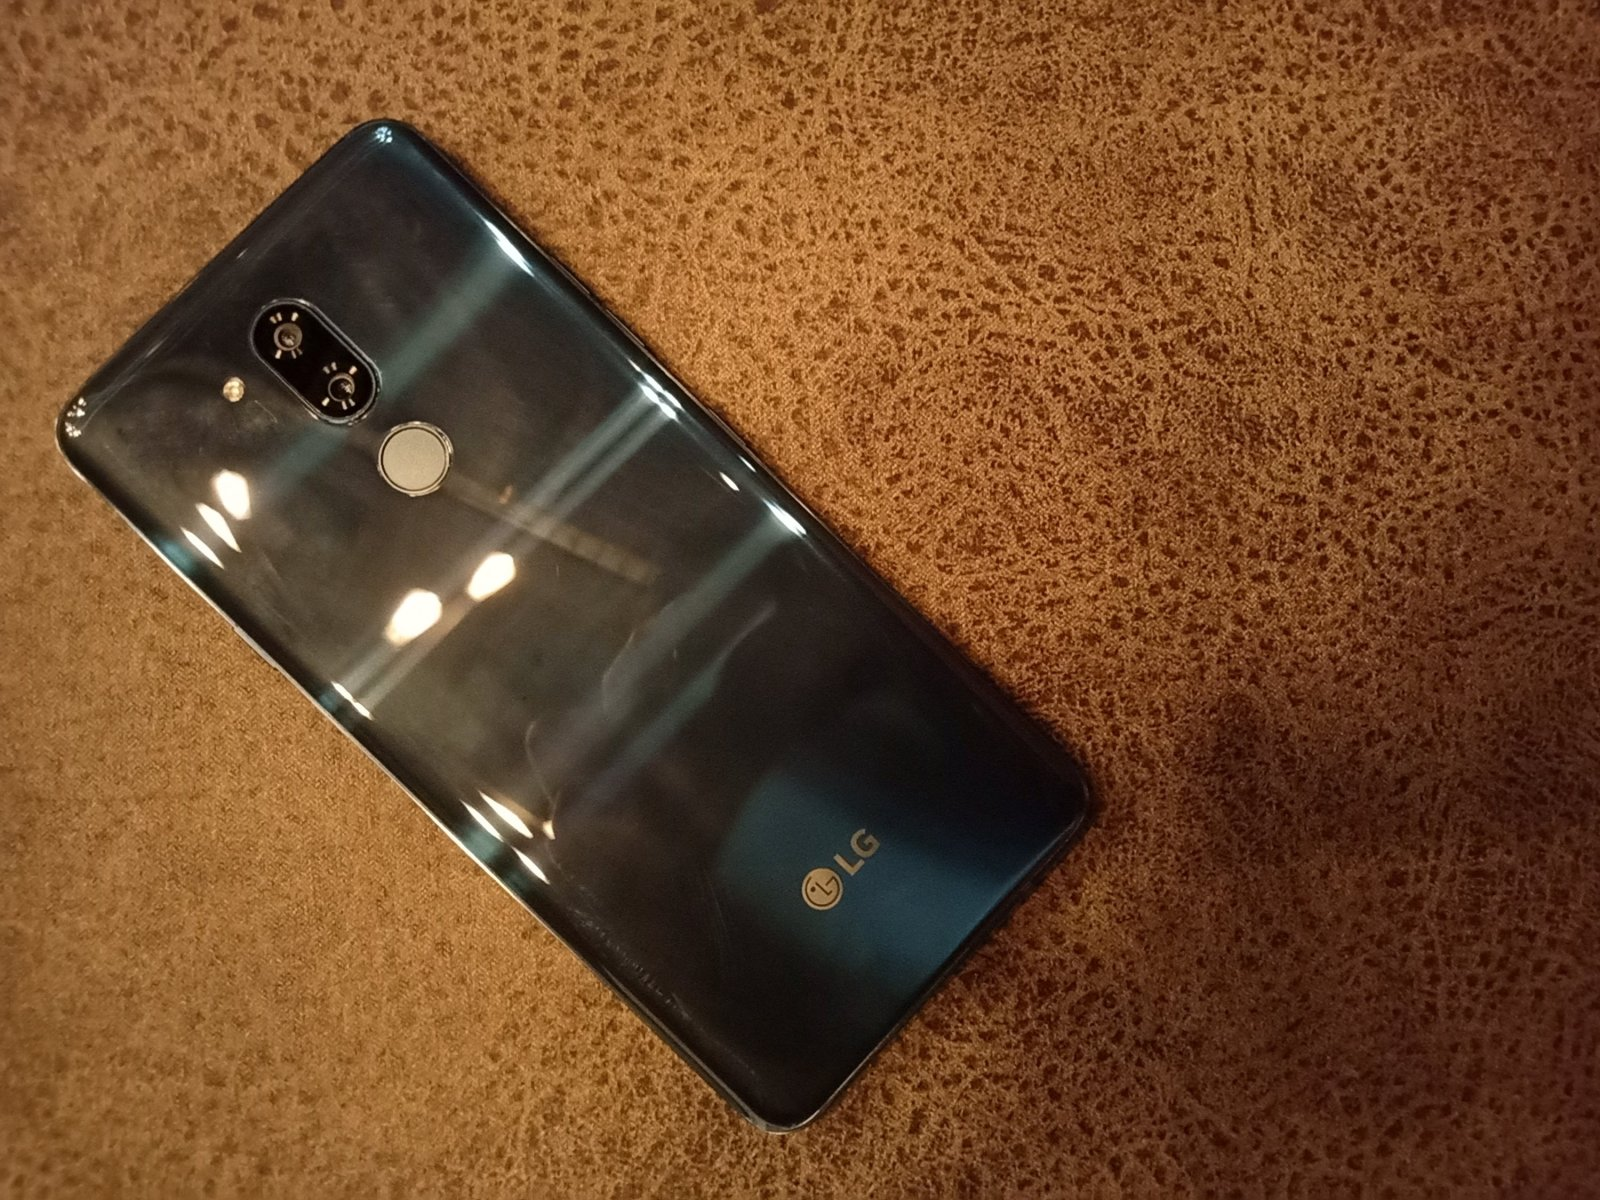 LG G7 ThinQ back